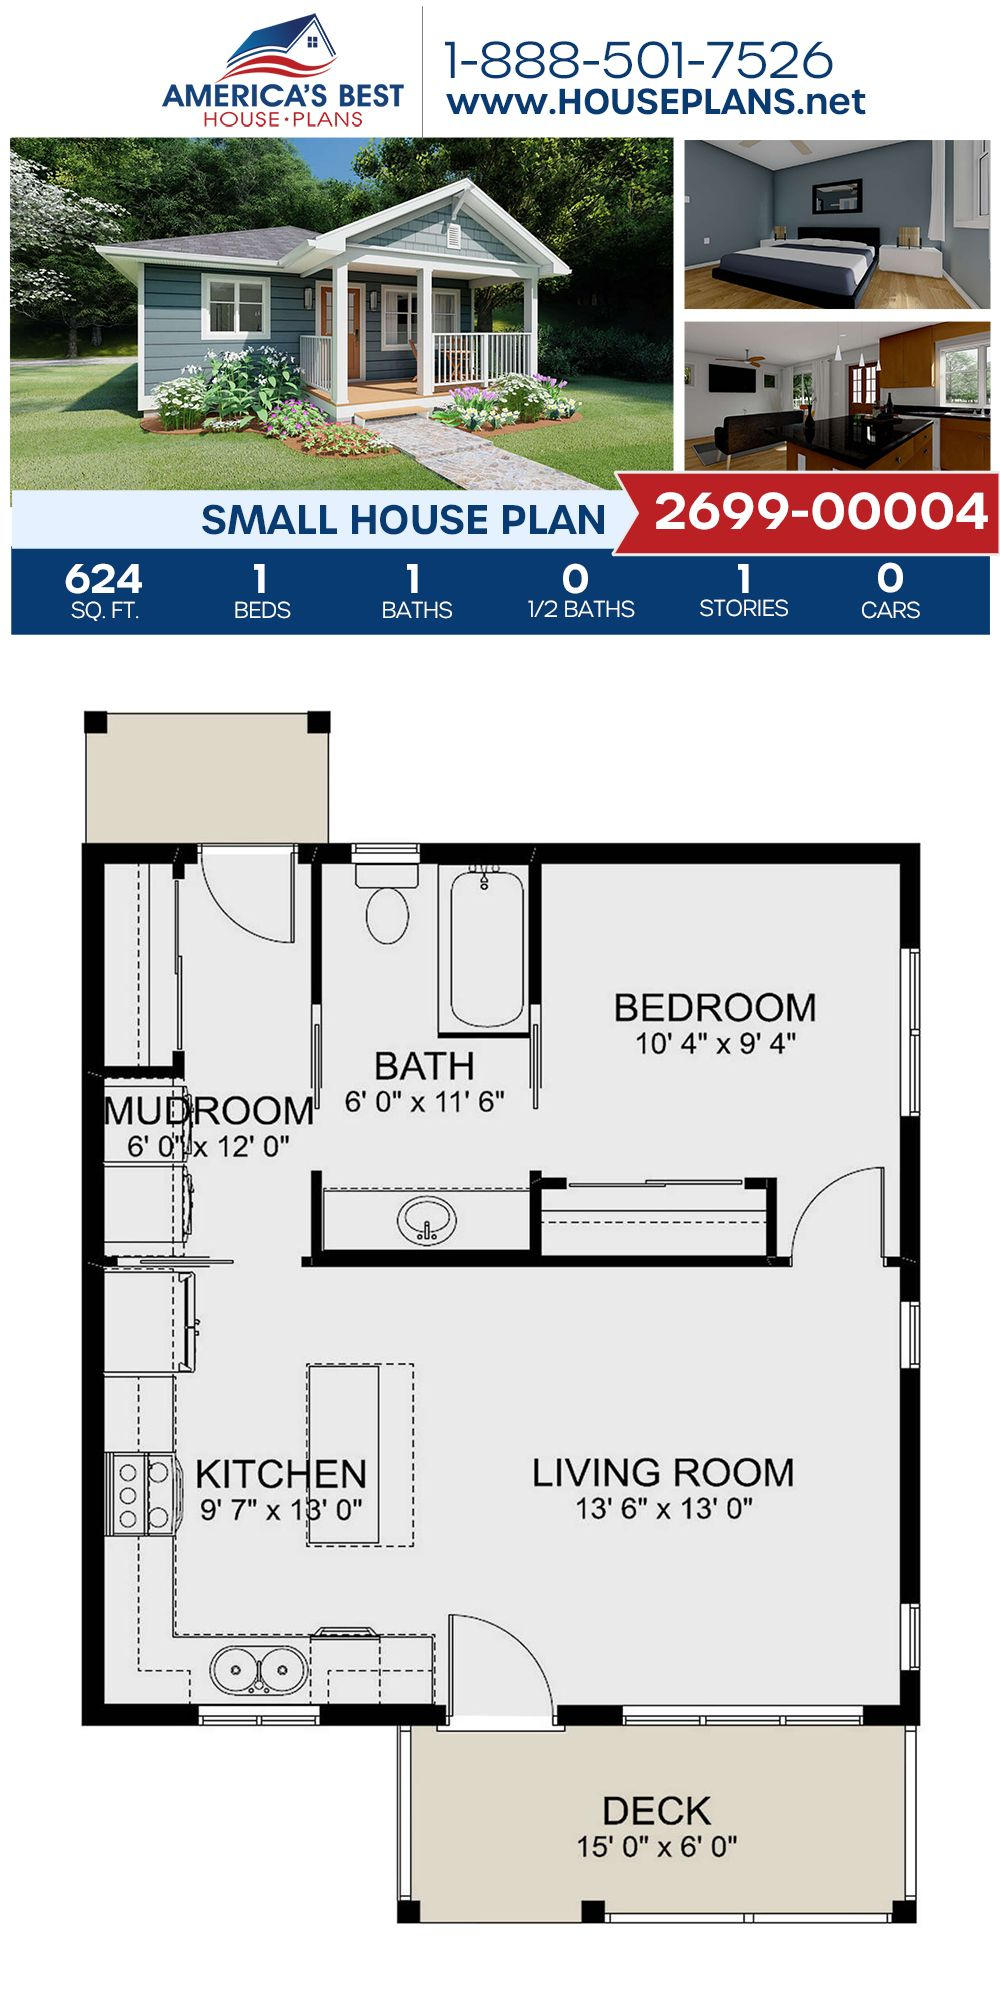 Small House Plan 2699